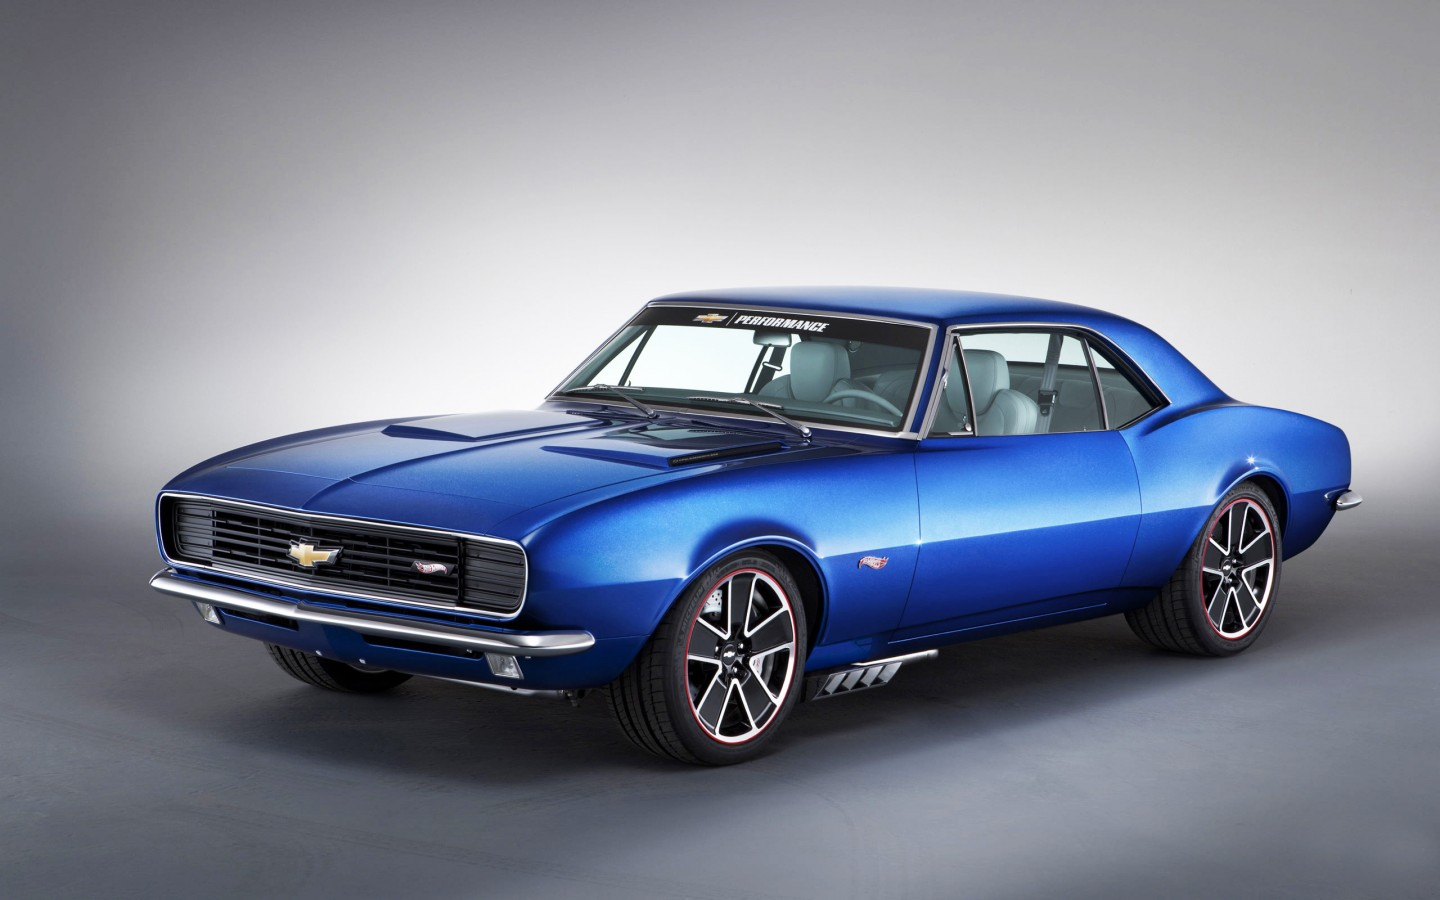 Muscle Car Camaro free hd wallpapers 1440x900